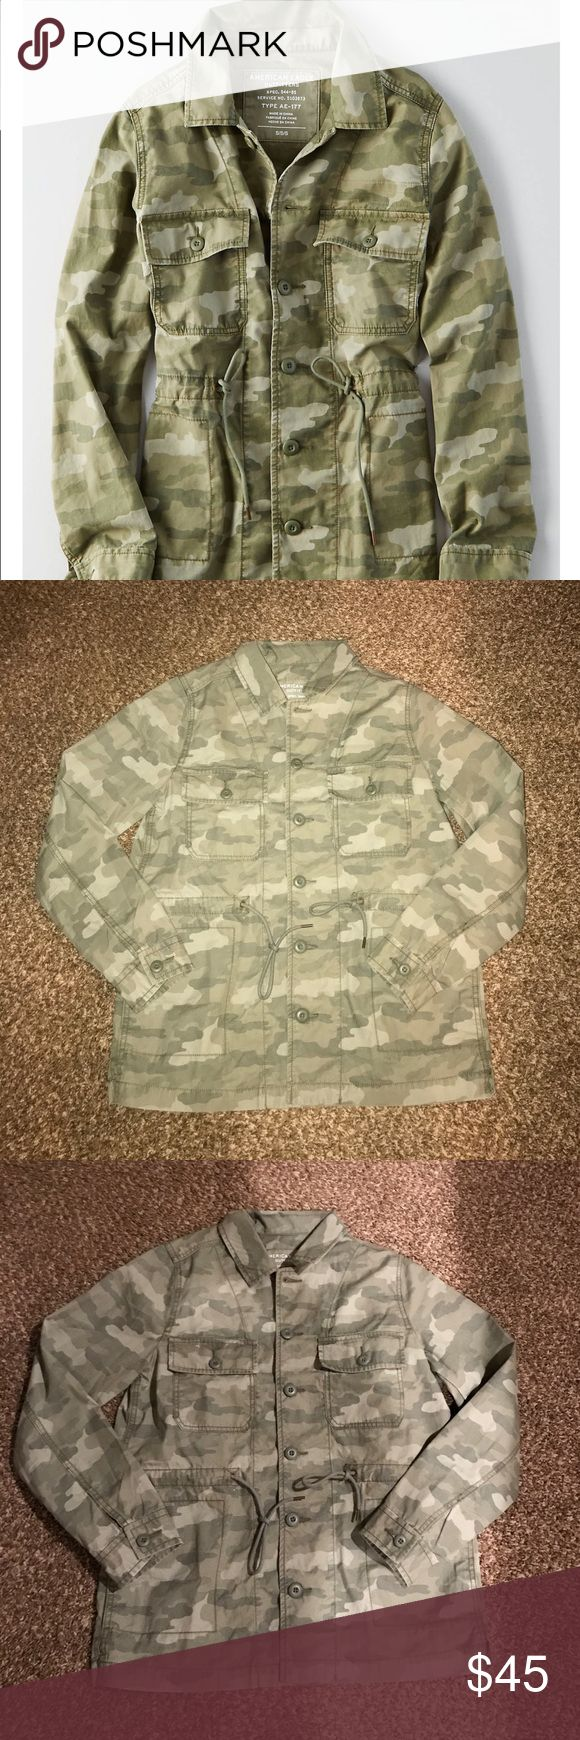 American Eagle Camouflage Jacket +free socks New with tags, size small. Get free AE crew socks with this purchase. **ALL PURCHASES SHIP TOMORROW, 3/10** American Eagle Outfitters Jackets & Coats Utility Jackets